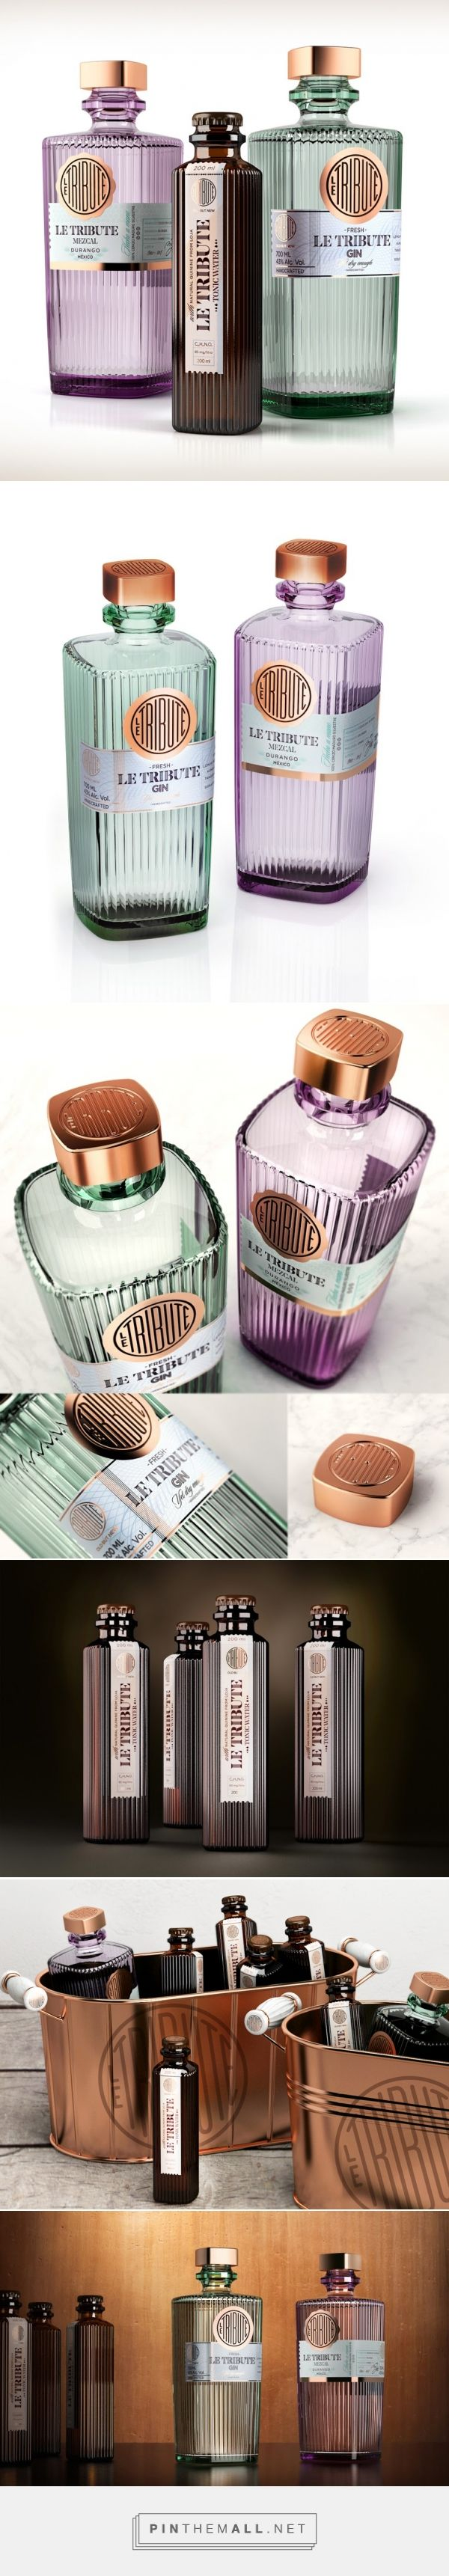 LE TRIBUTE - ‪‎Gin,‬ ‪‎Mezcal,‬ ‪‎Tonic water‬ ‪‎packaging‬ ‪‎design‬ by SeriesNemo (‪Spain‬) ‪avantgarde‬ ‪‎contemporary‬ - http://www.packagingoftheworld.com/2016/05/le-tribute.html